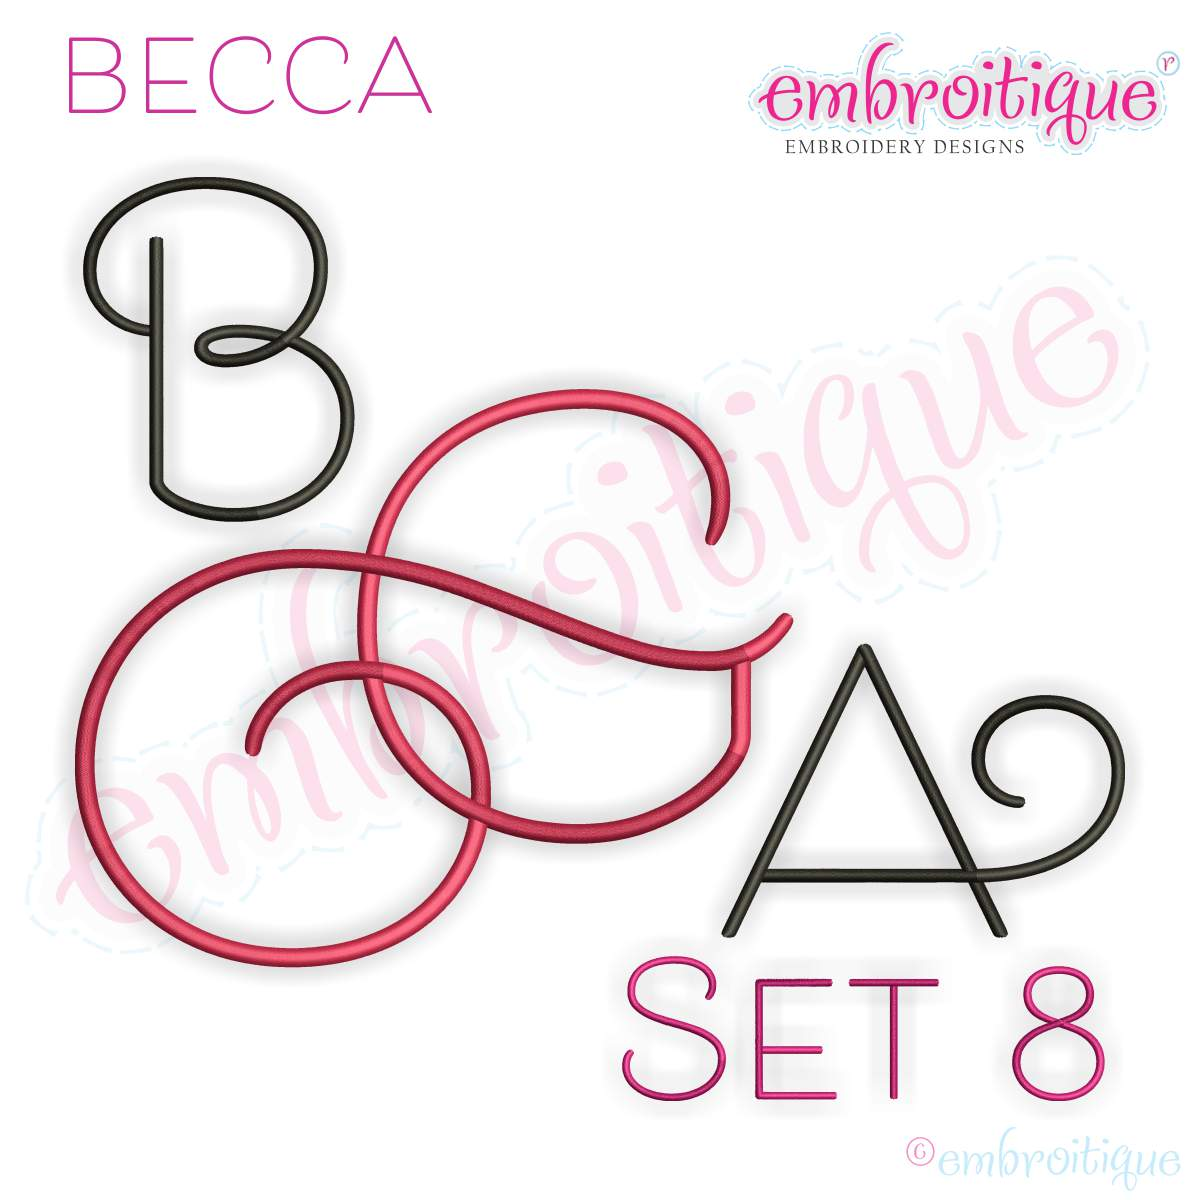 alphabets embroidery fonts becca set 2 exclusive